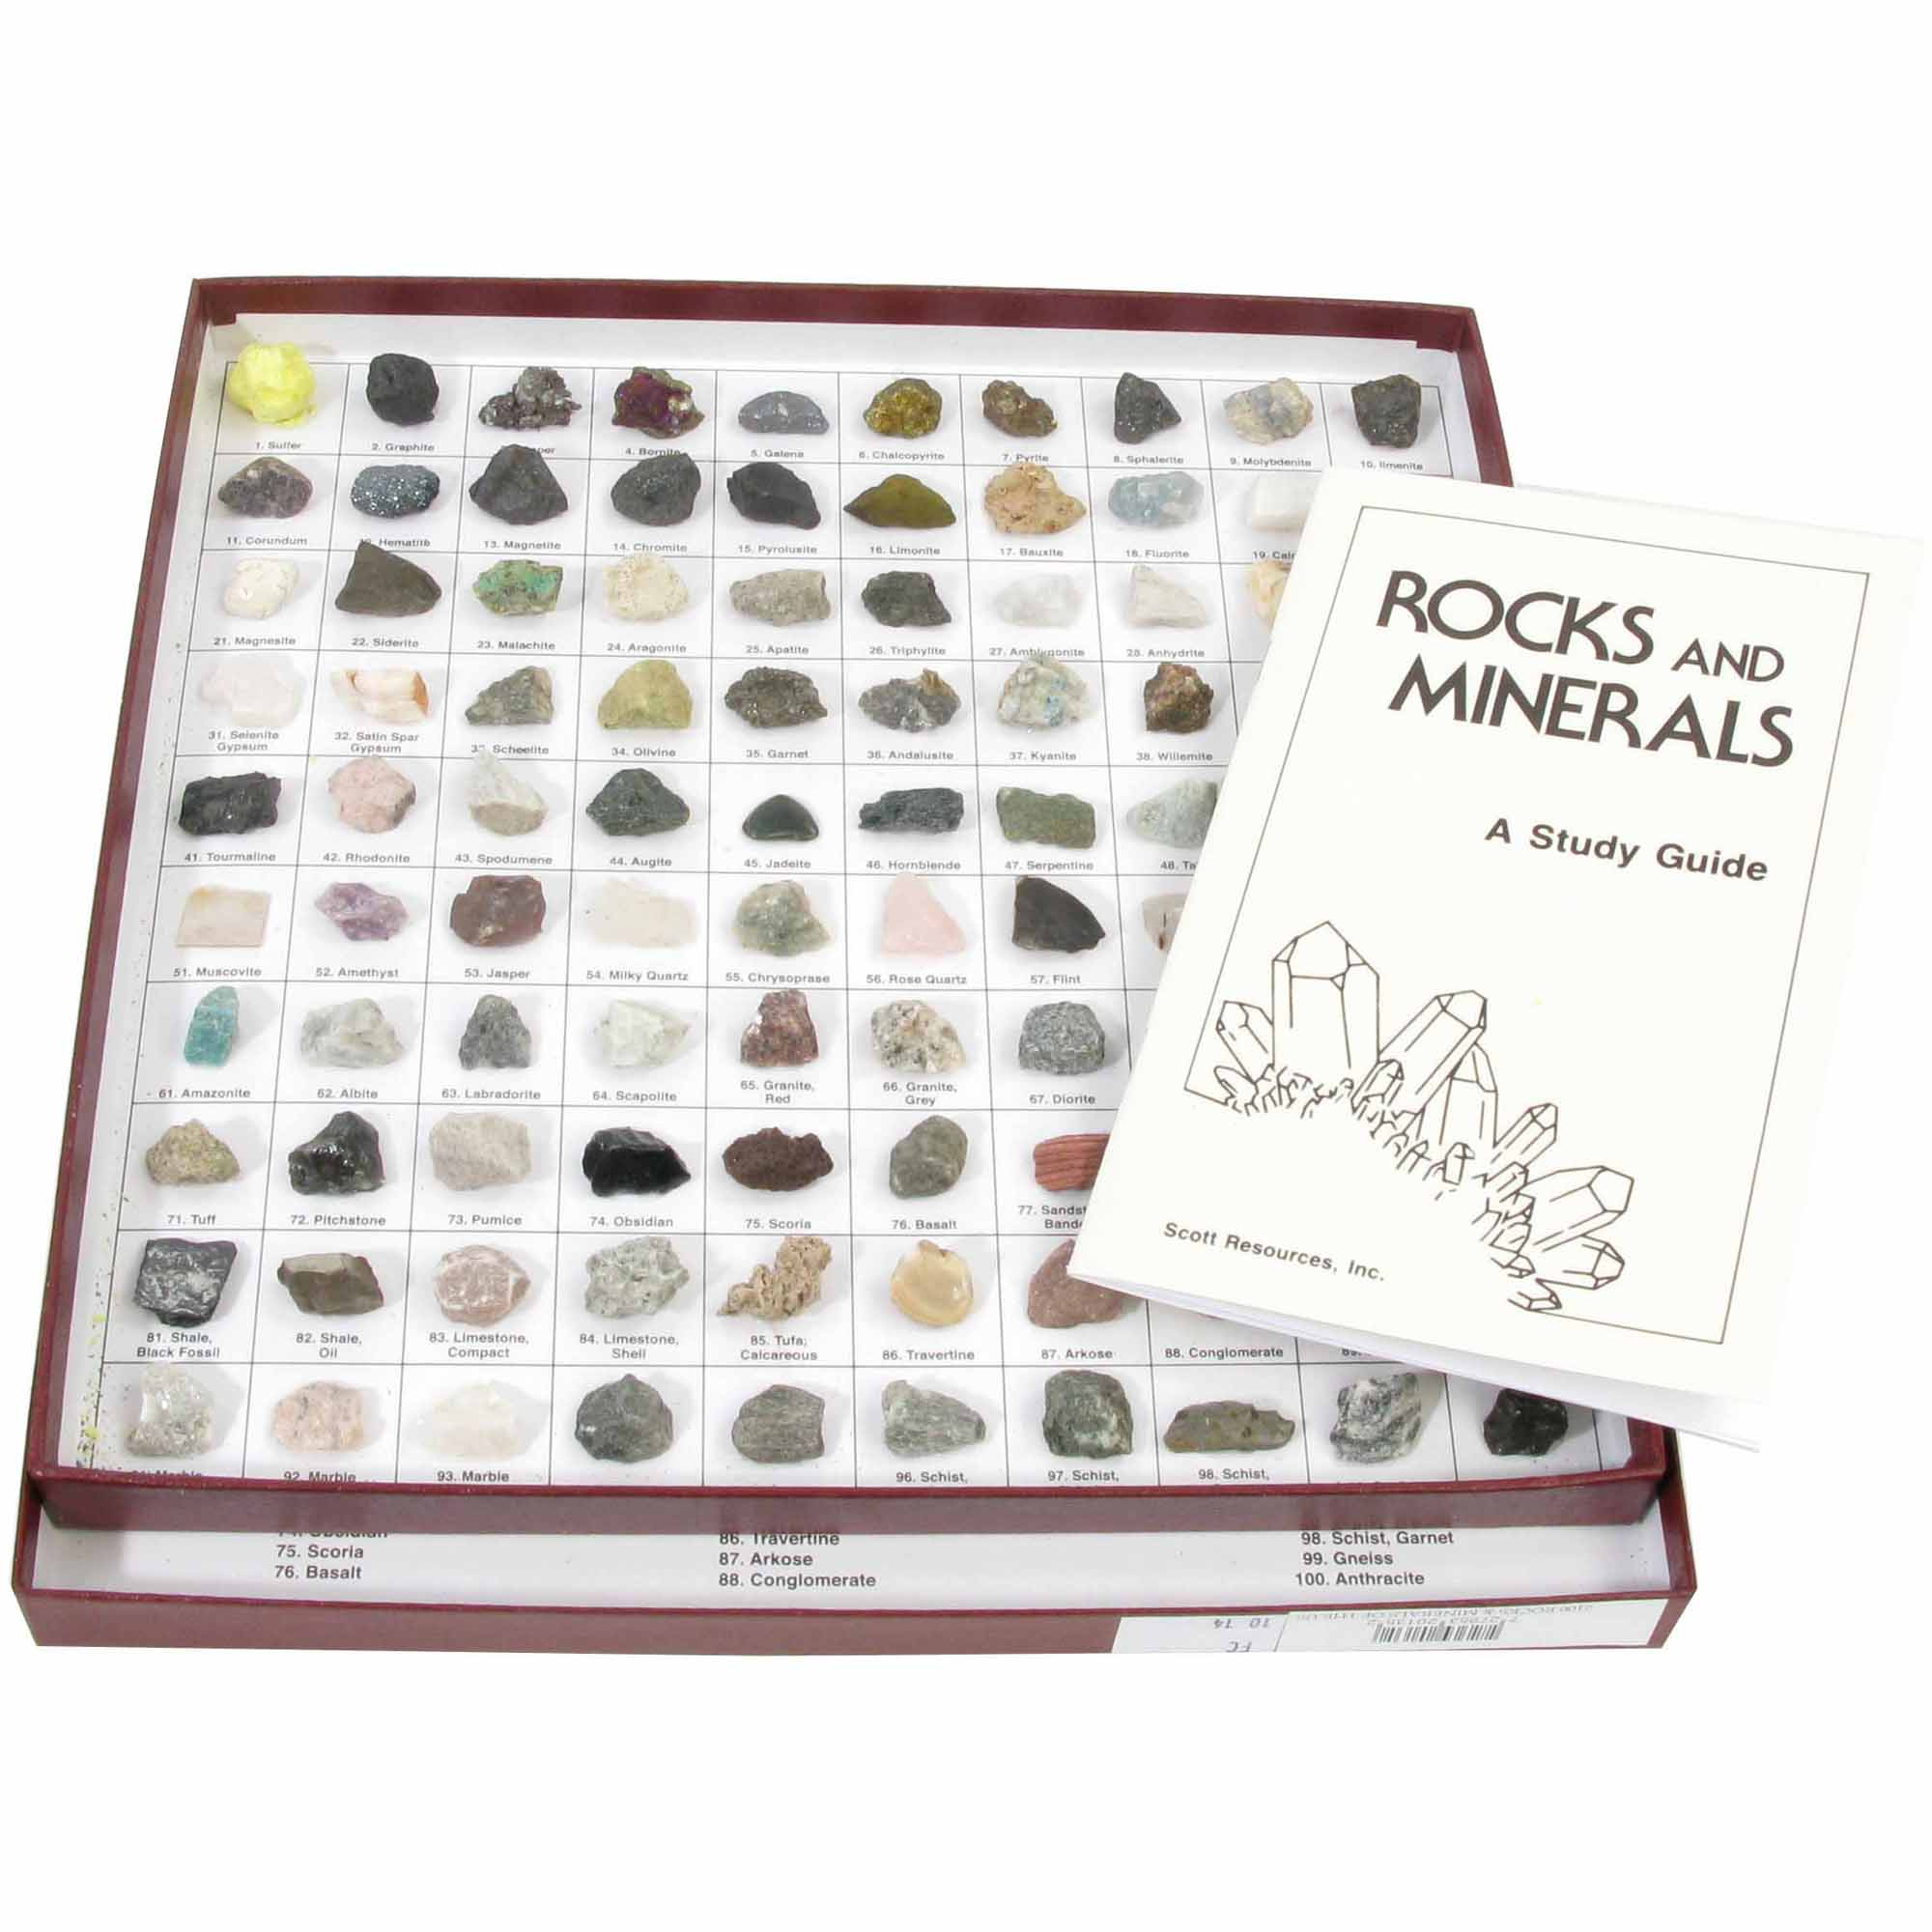 American Educational Products Rocks and Minerals of the U.S. Collection